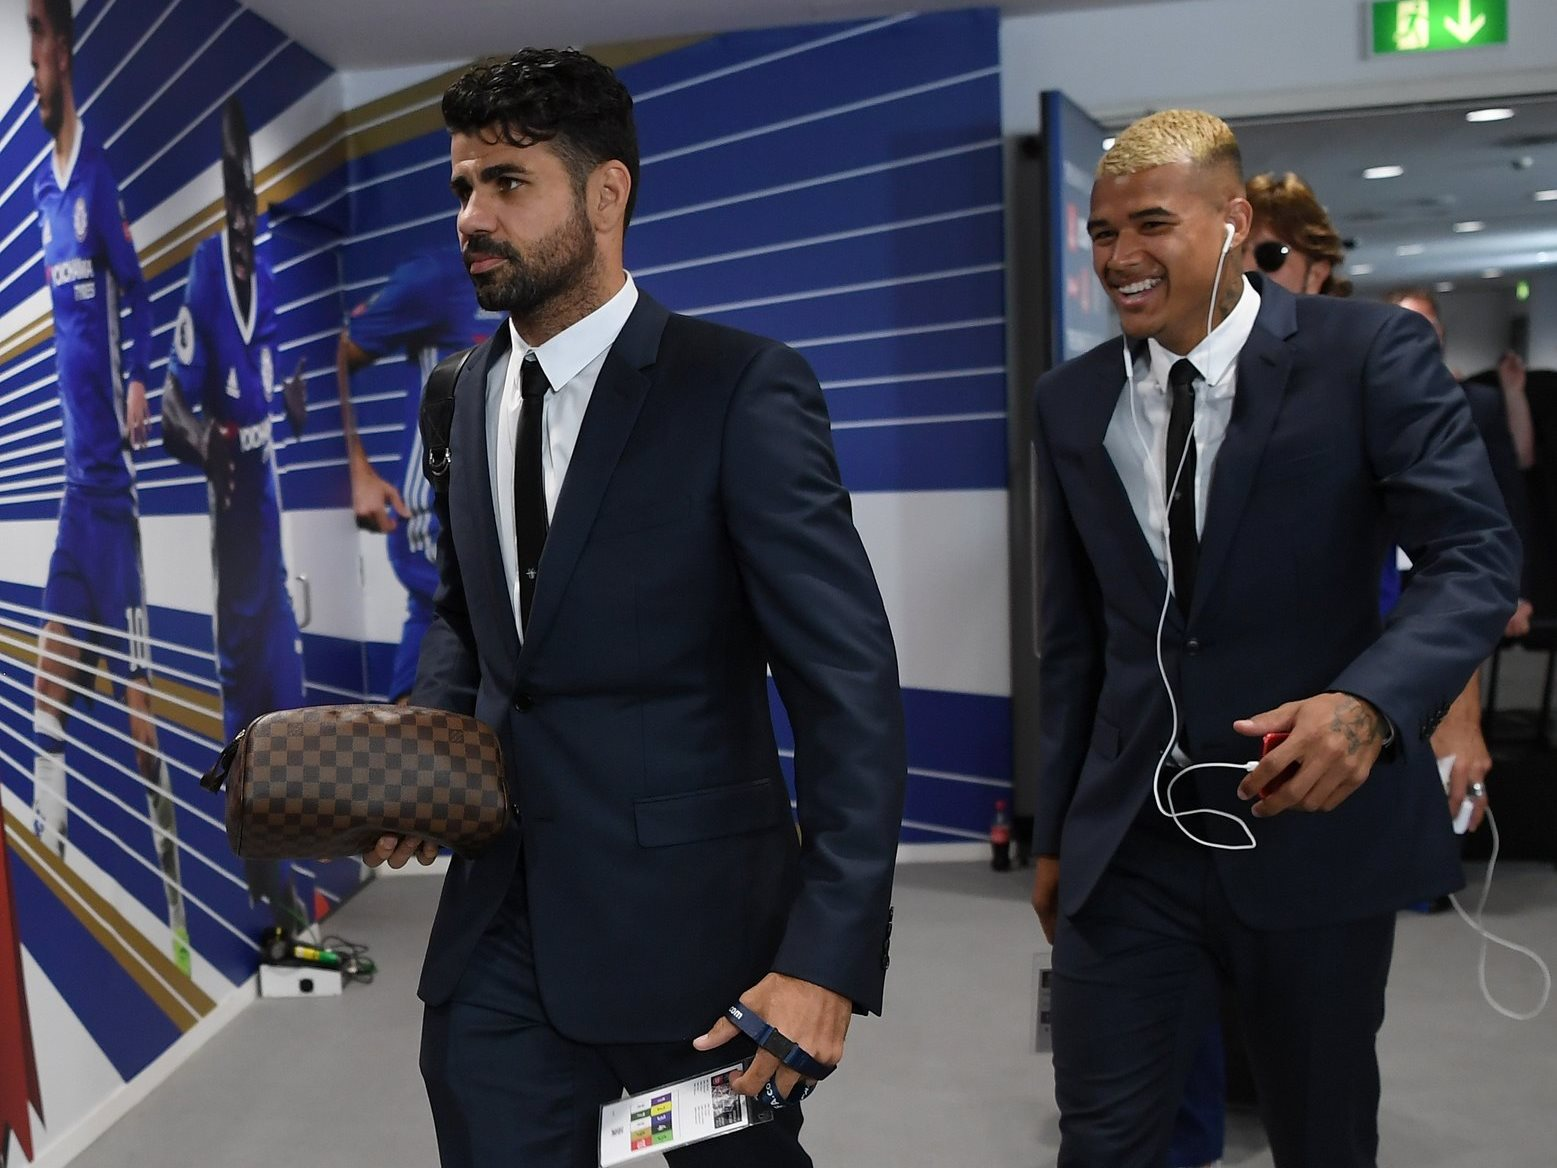 Diego Costa arrives at Wembley in DIOR suit